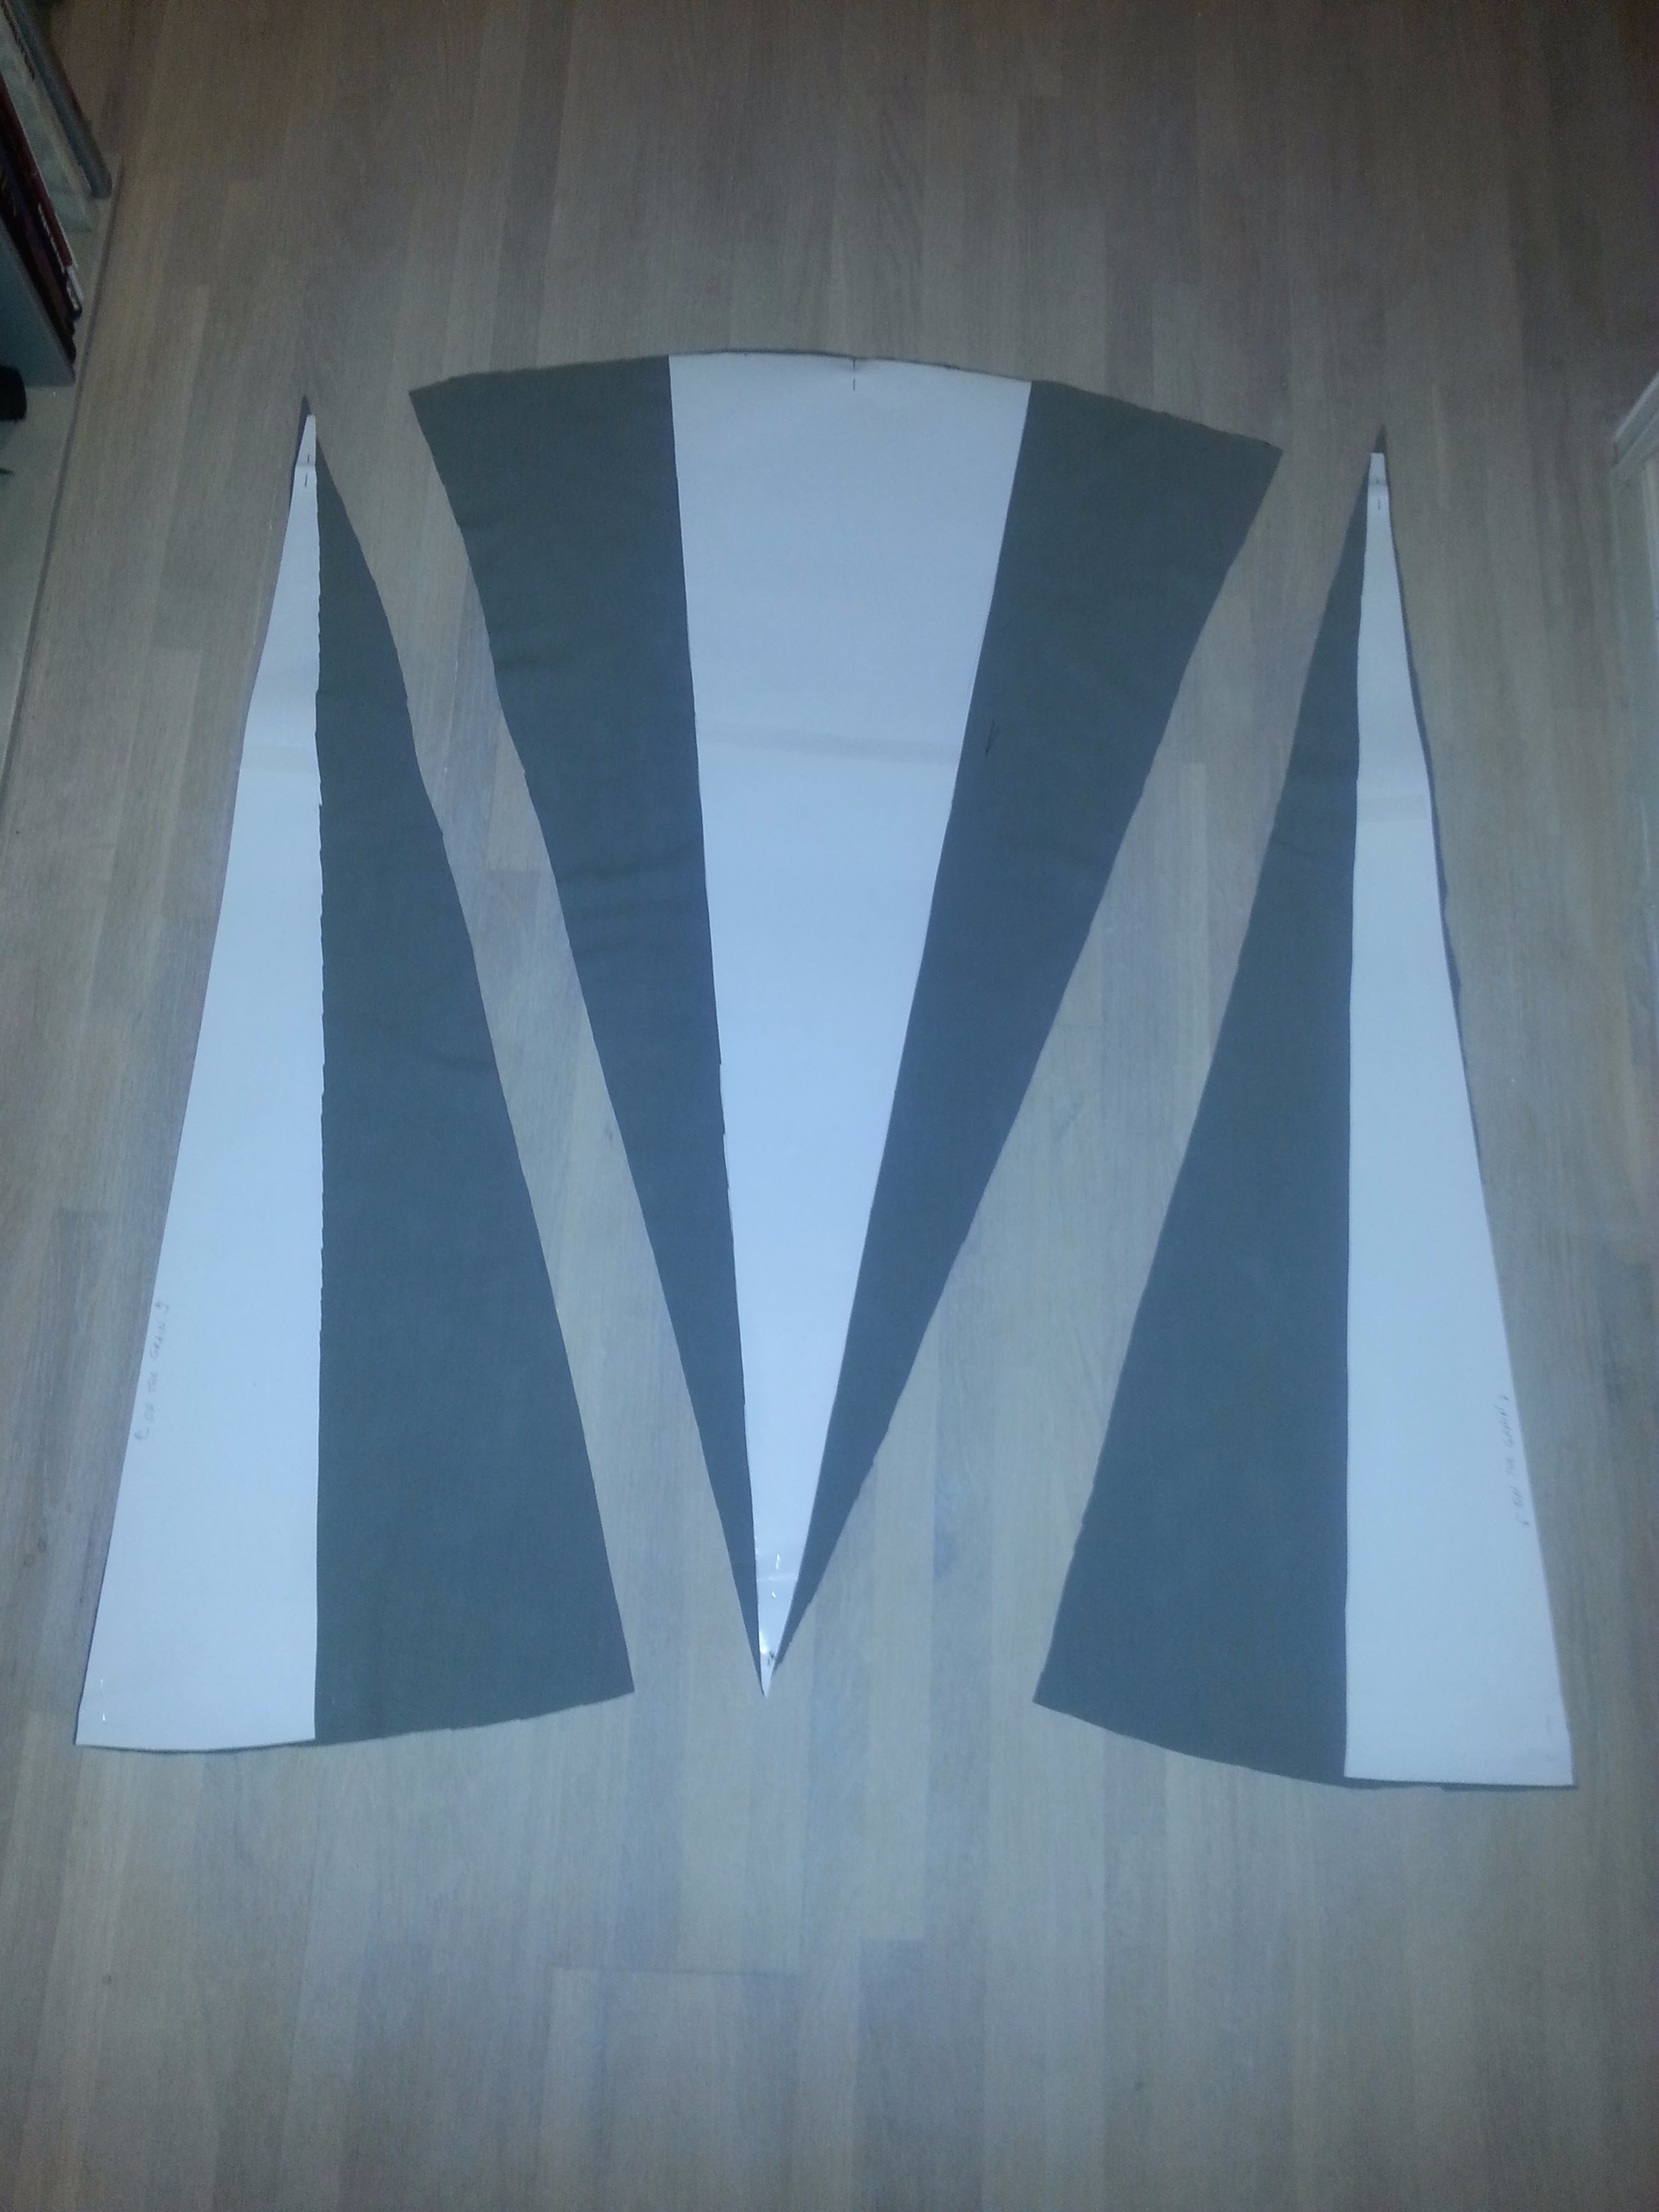 Picture of Cut Out the Material